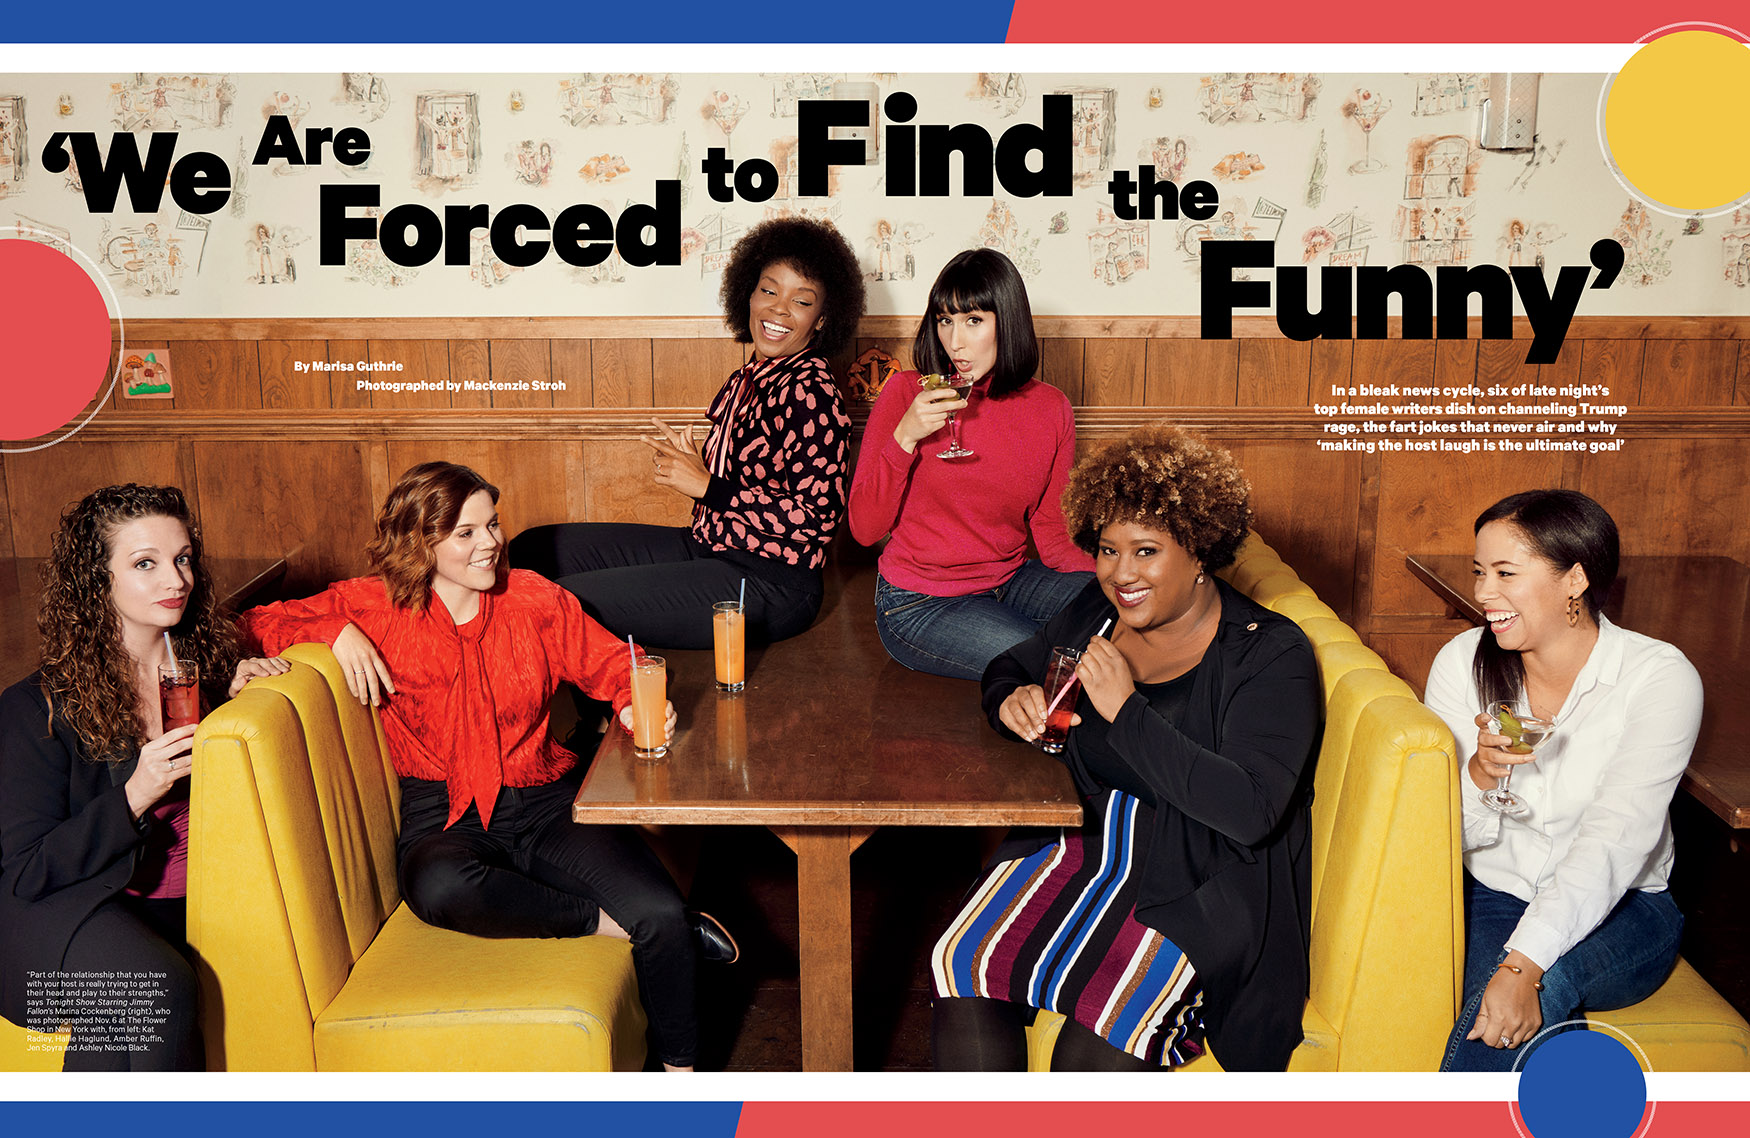 'Forced to Find the Funny' / The Hollywood Reporter / Women in Entertainment 2018 / kelsey stefanson / art direction + graphic design / yeskelsey.com